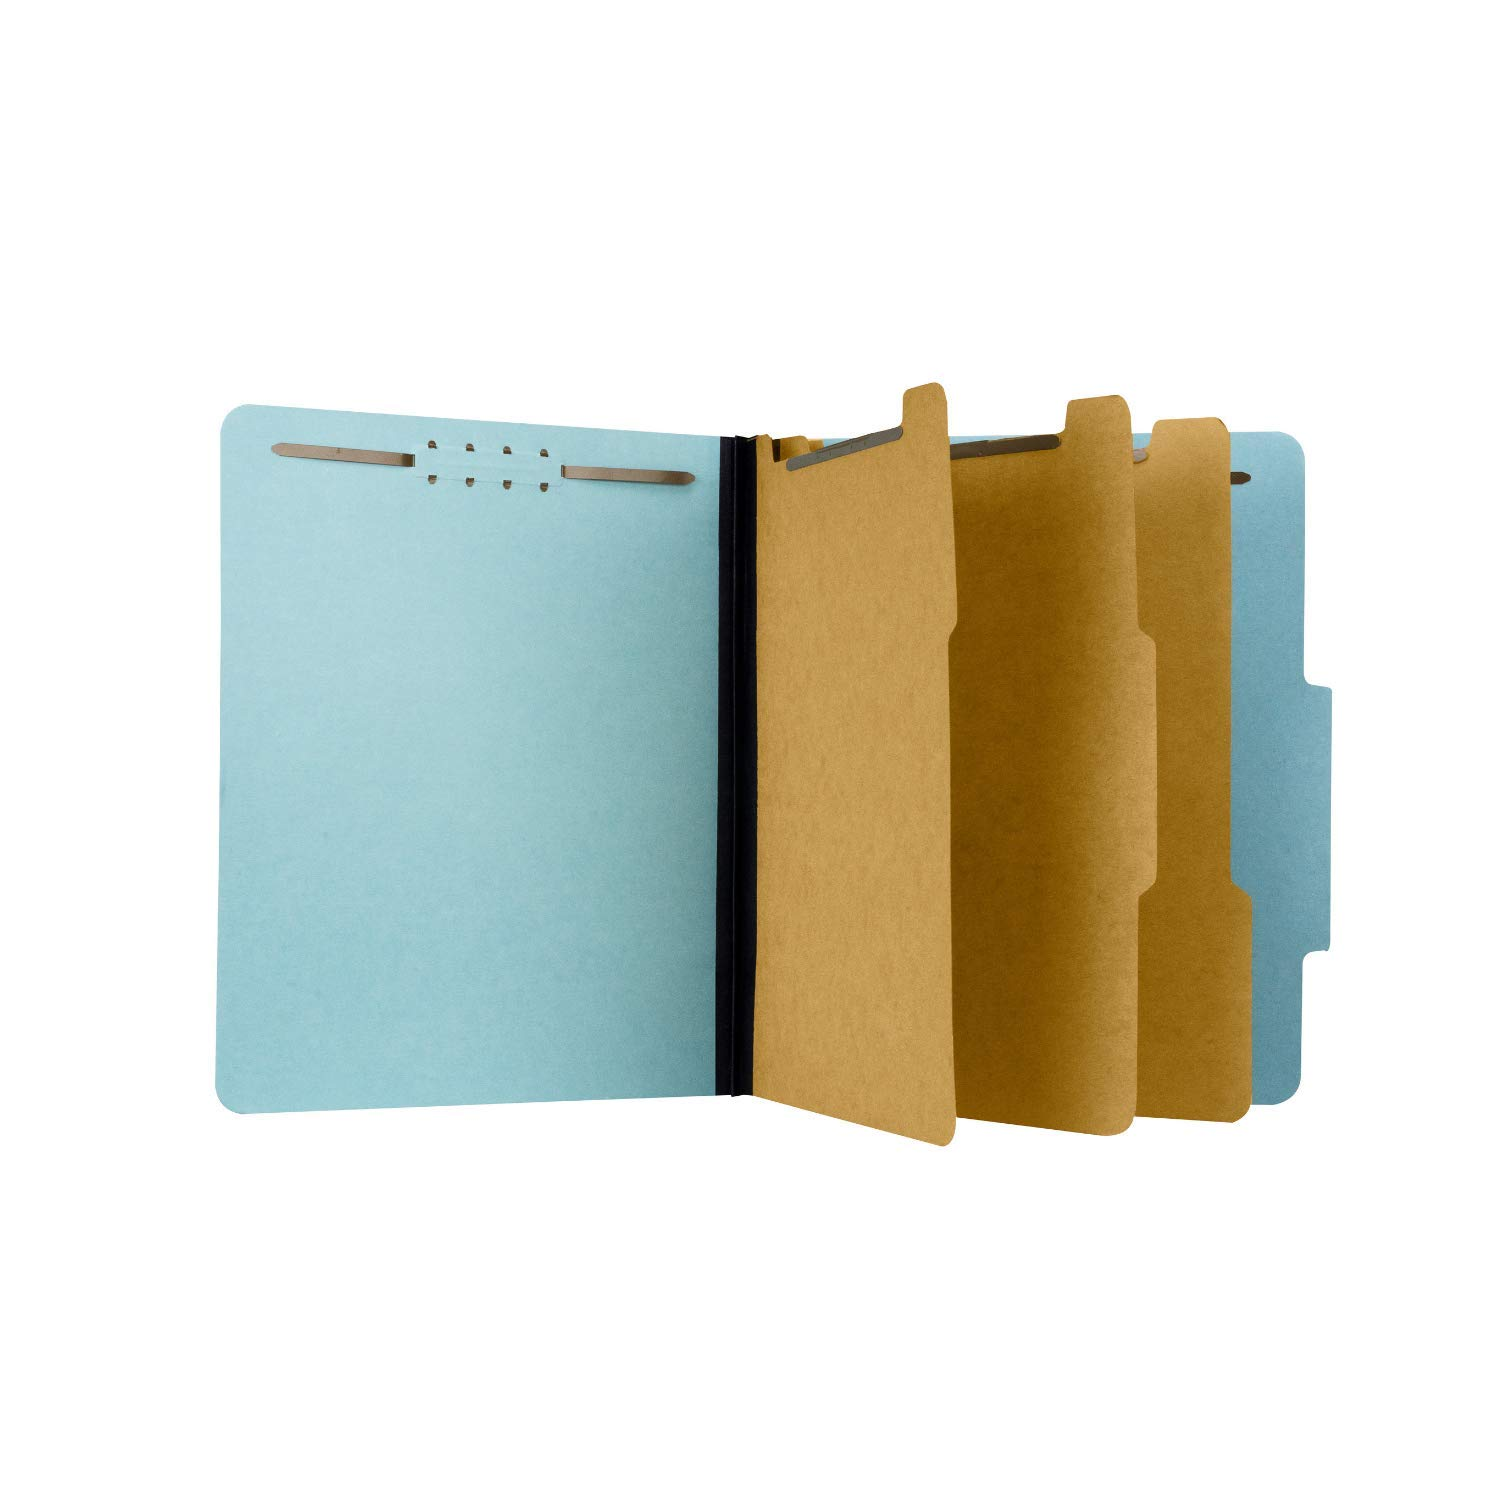 Pressboard Classification File Folder with 3 dividers and Fasteners, Letter Size, Blue, 2'' Expansion, Box 10